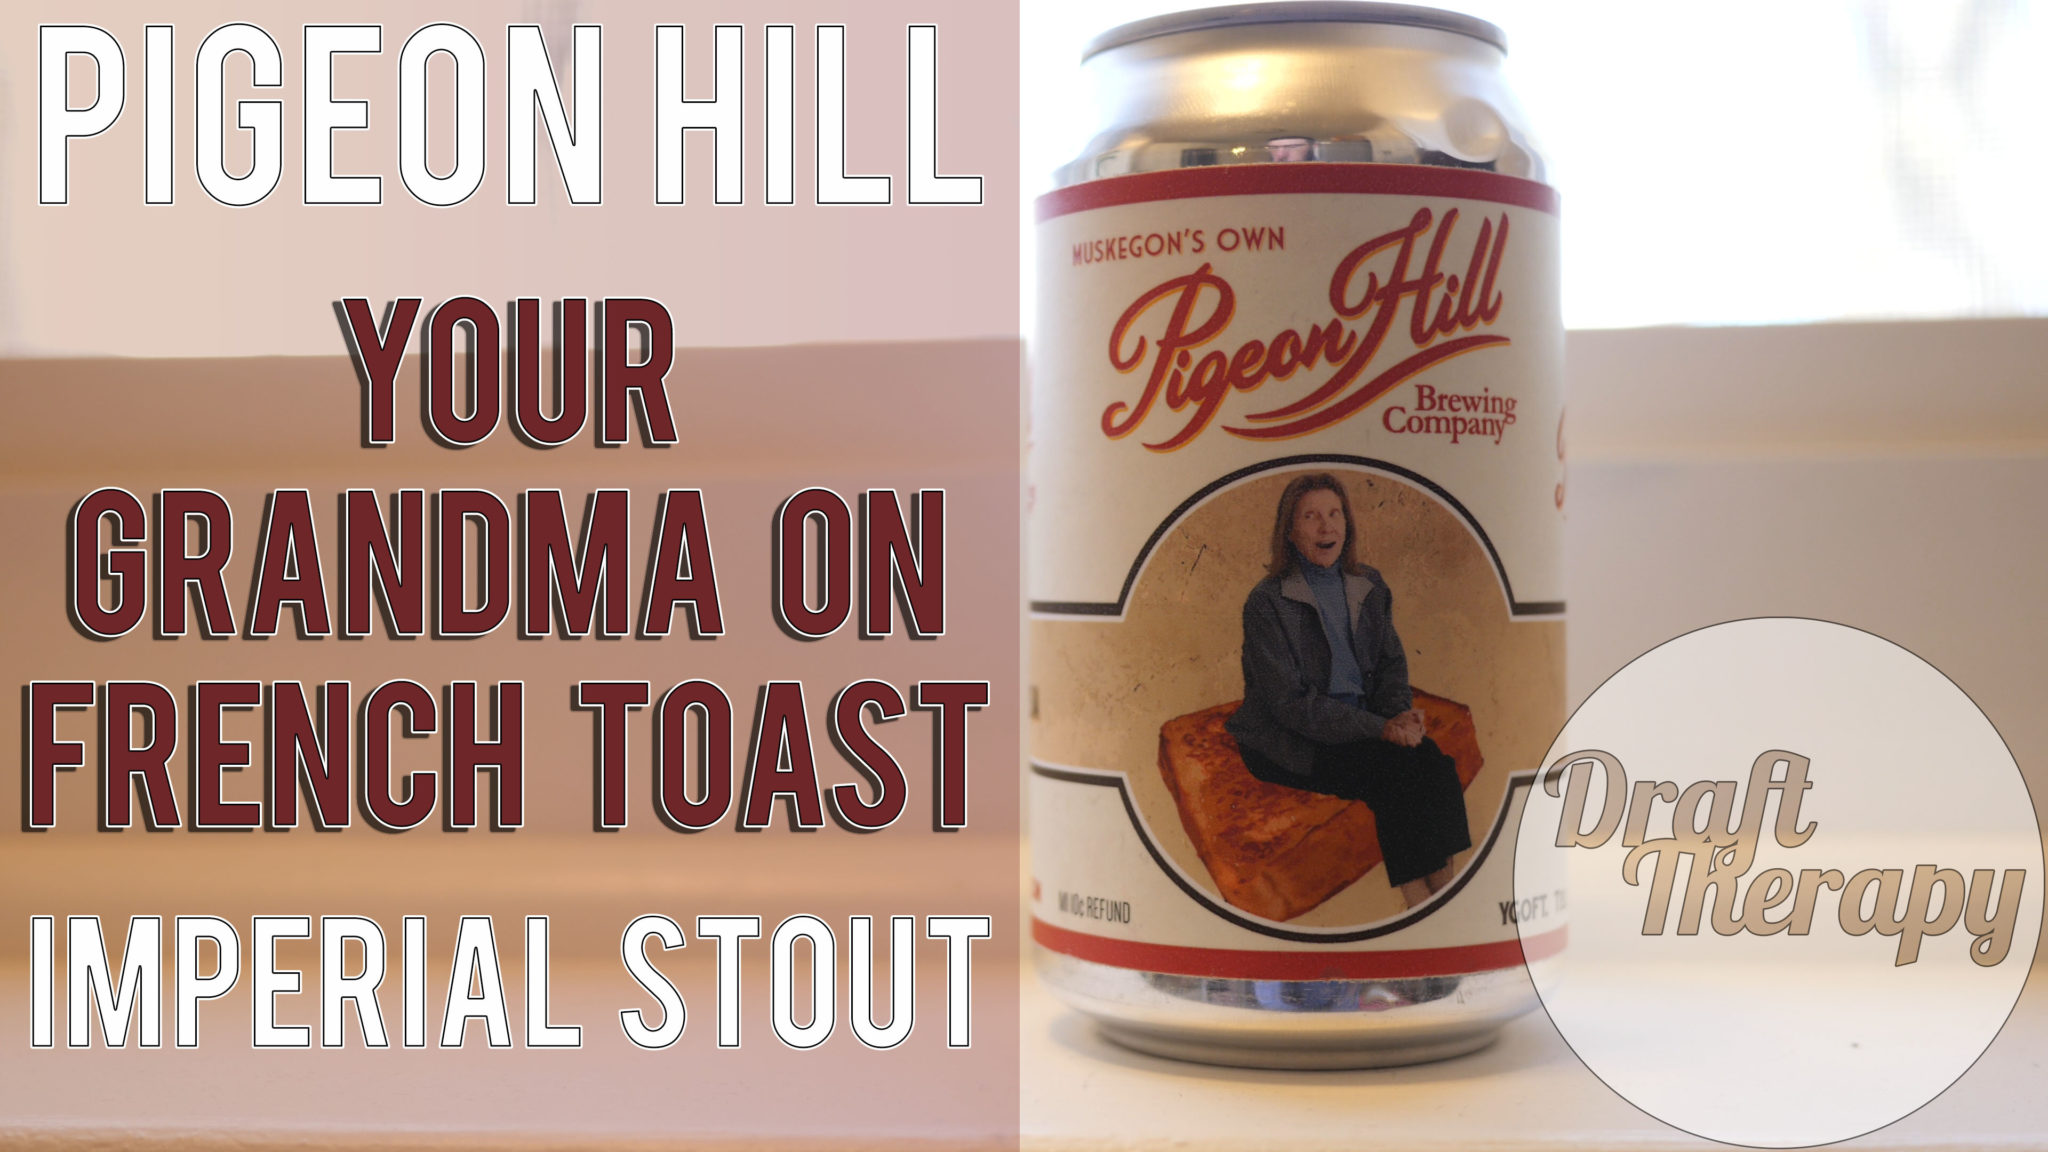 Pigeon Hill – Your Grandma on French Toast